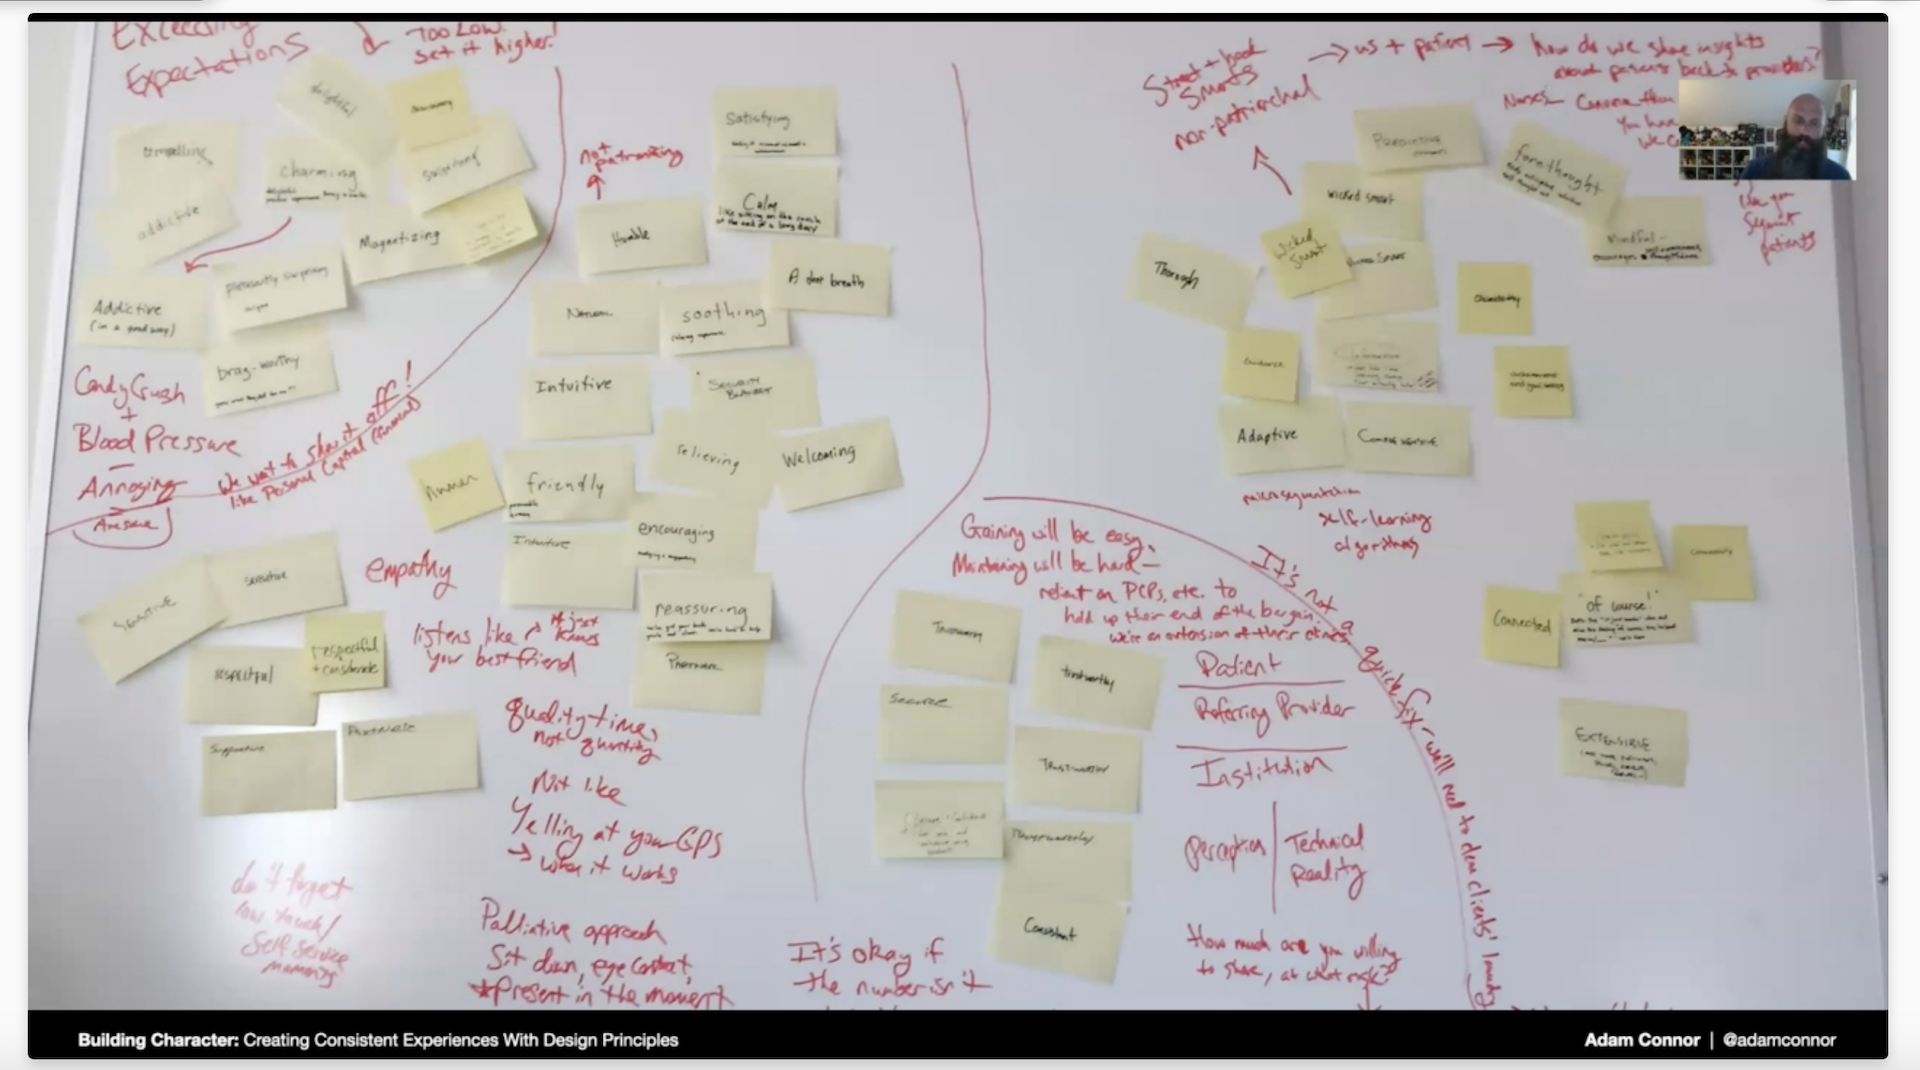 Yellow sticky notes grouped together on a white board.